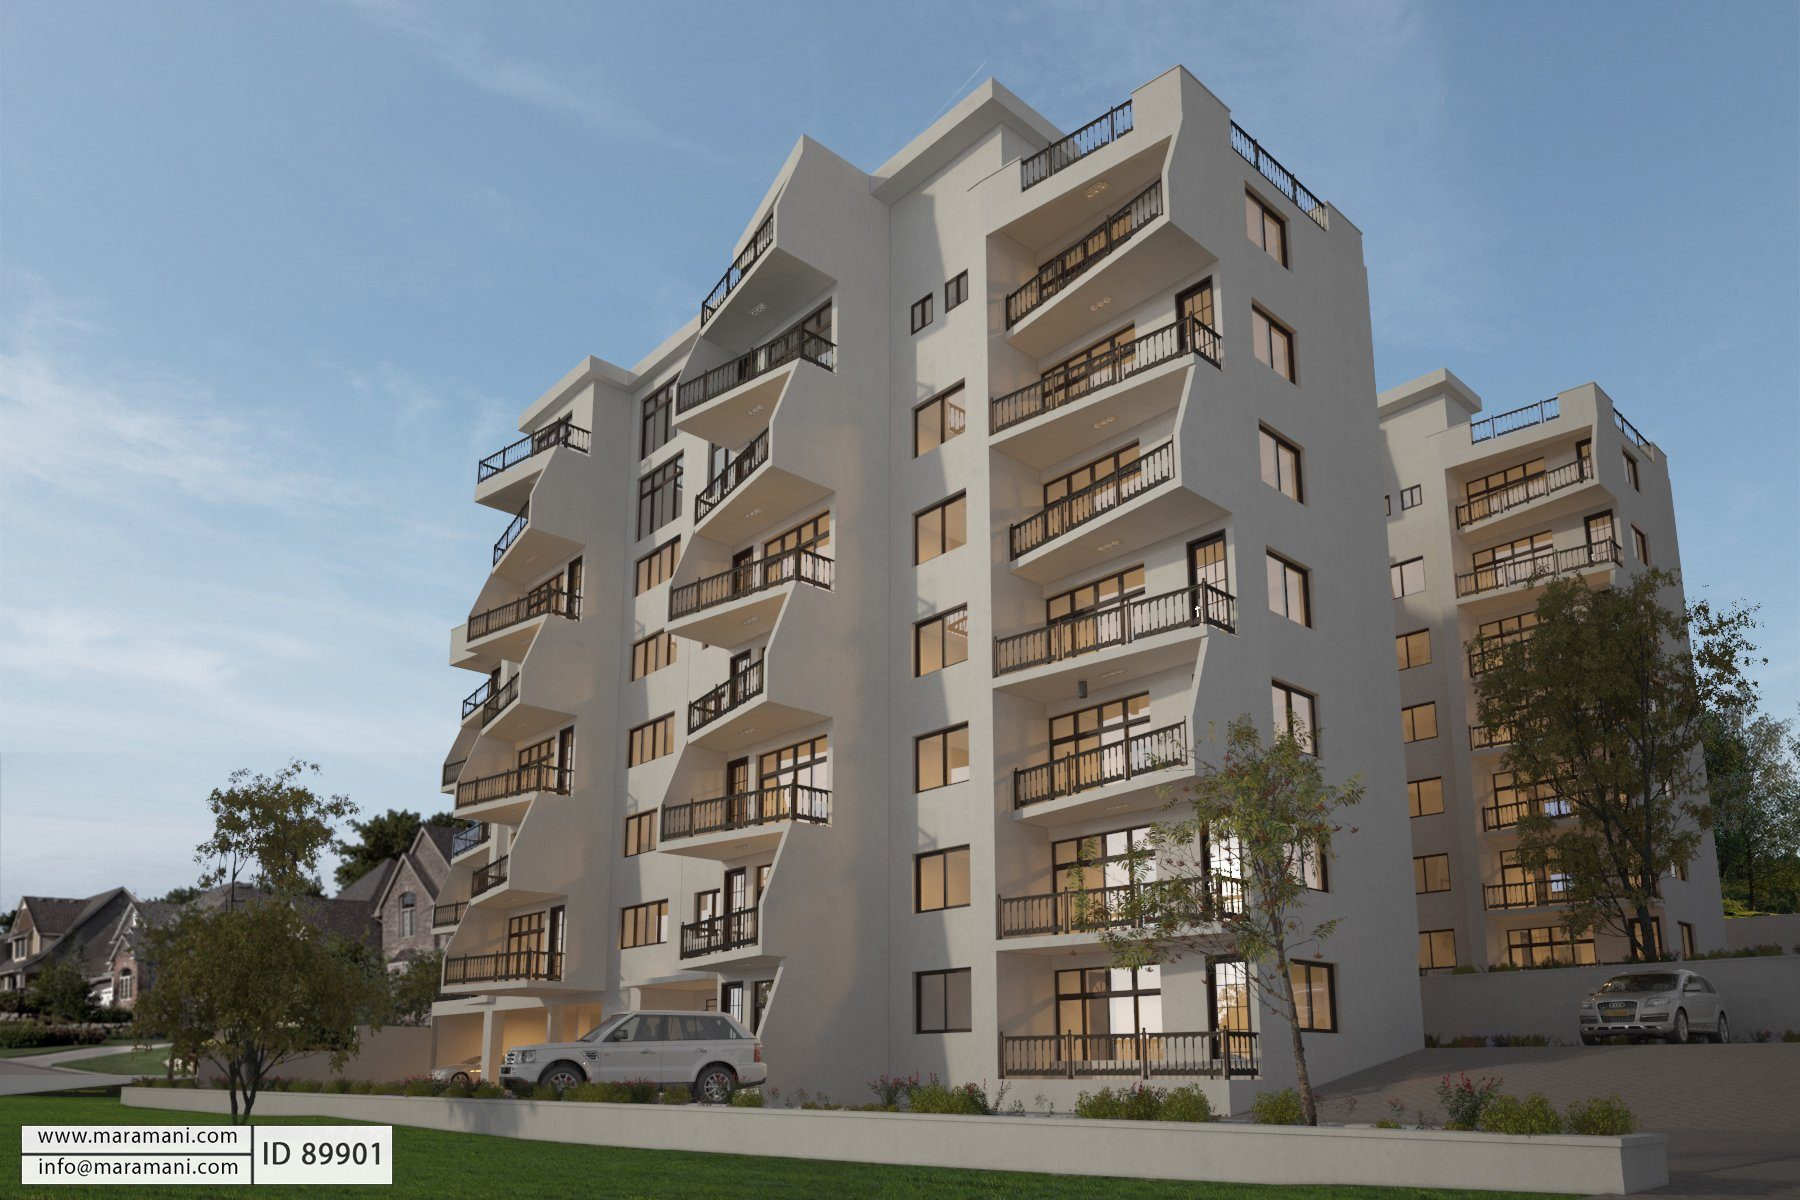 12 flat apartment block id 89901 designs by maramani for Apartment number design